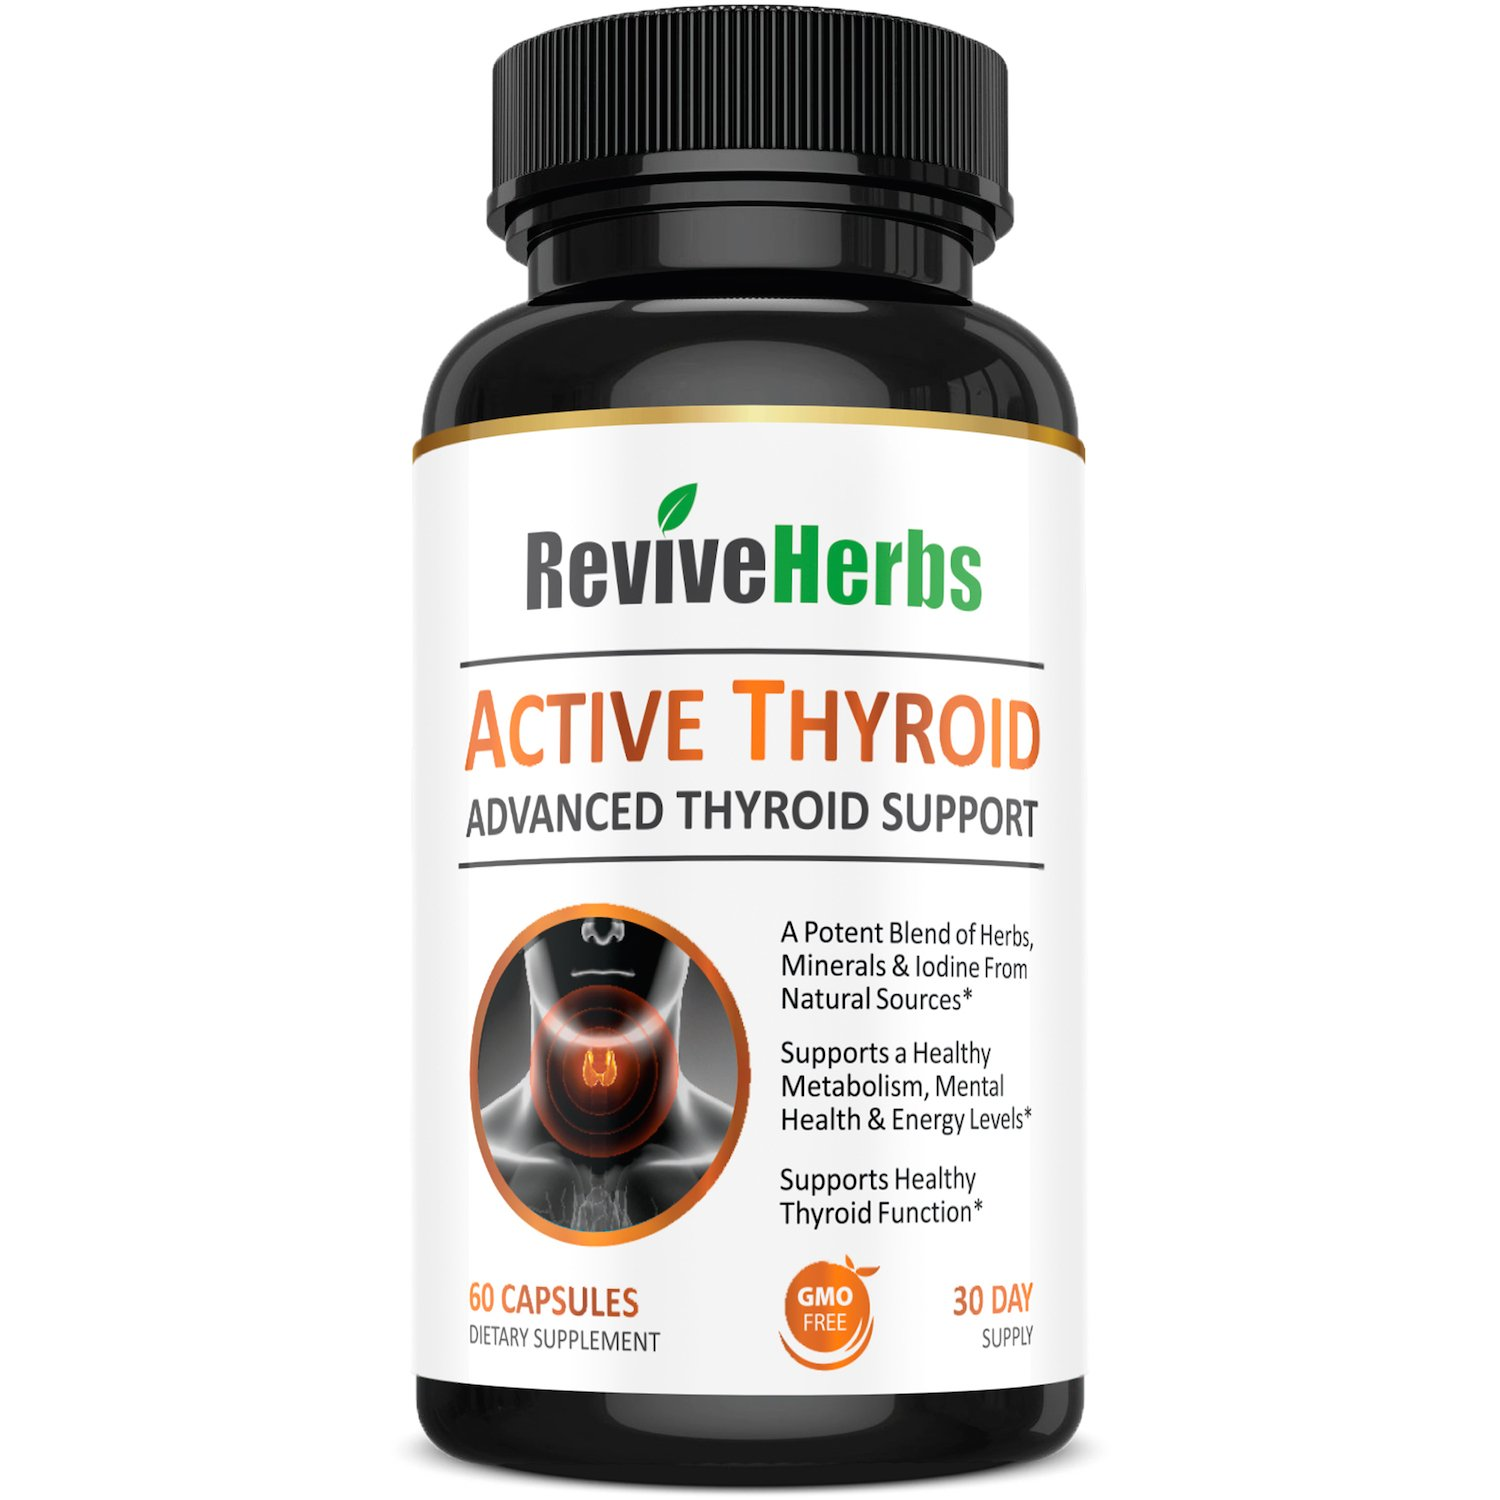 Premium Thyroid Support with Ashwagandha, Iodine, Selenium, Magnesium, Zinc, Kelp, B12 & More for Hypothyroidism, Weight Loss, Increased Energy & Metabolism by Revive Herbs by Revive Herbs